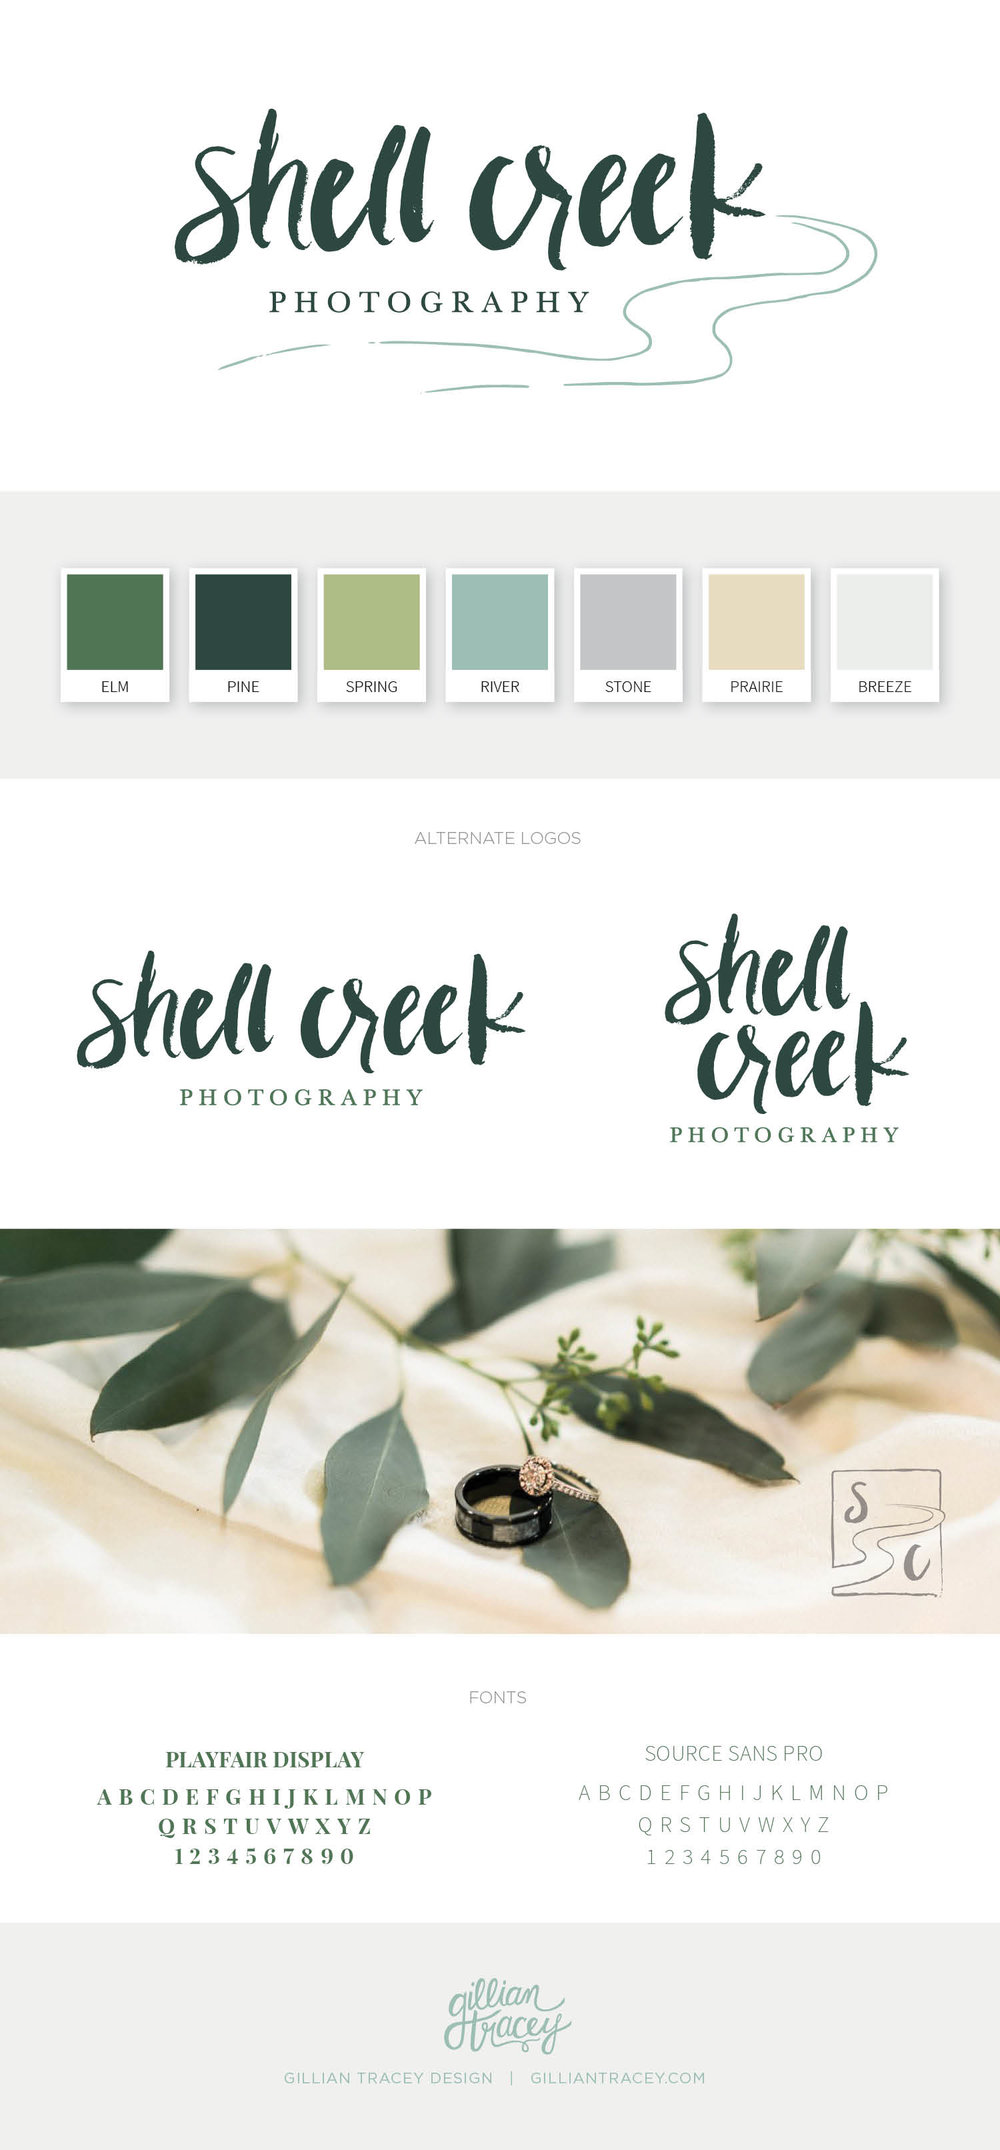 Shell Creek Photography Branding Board - Gillian Tracey Design